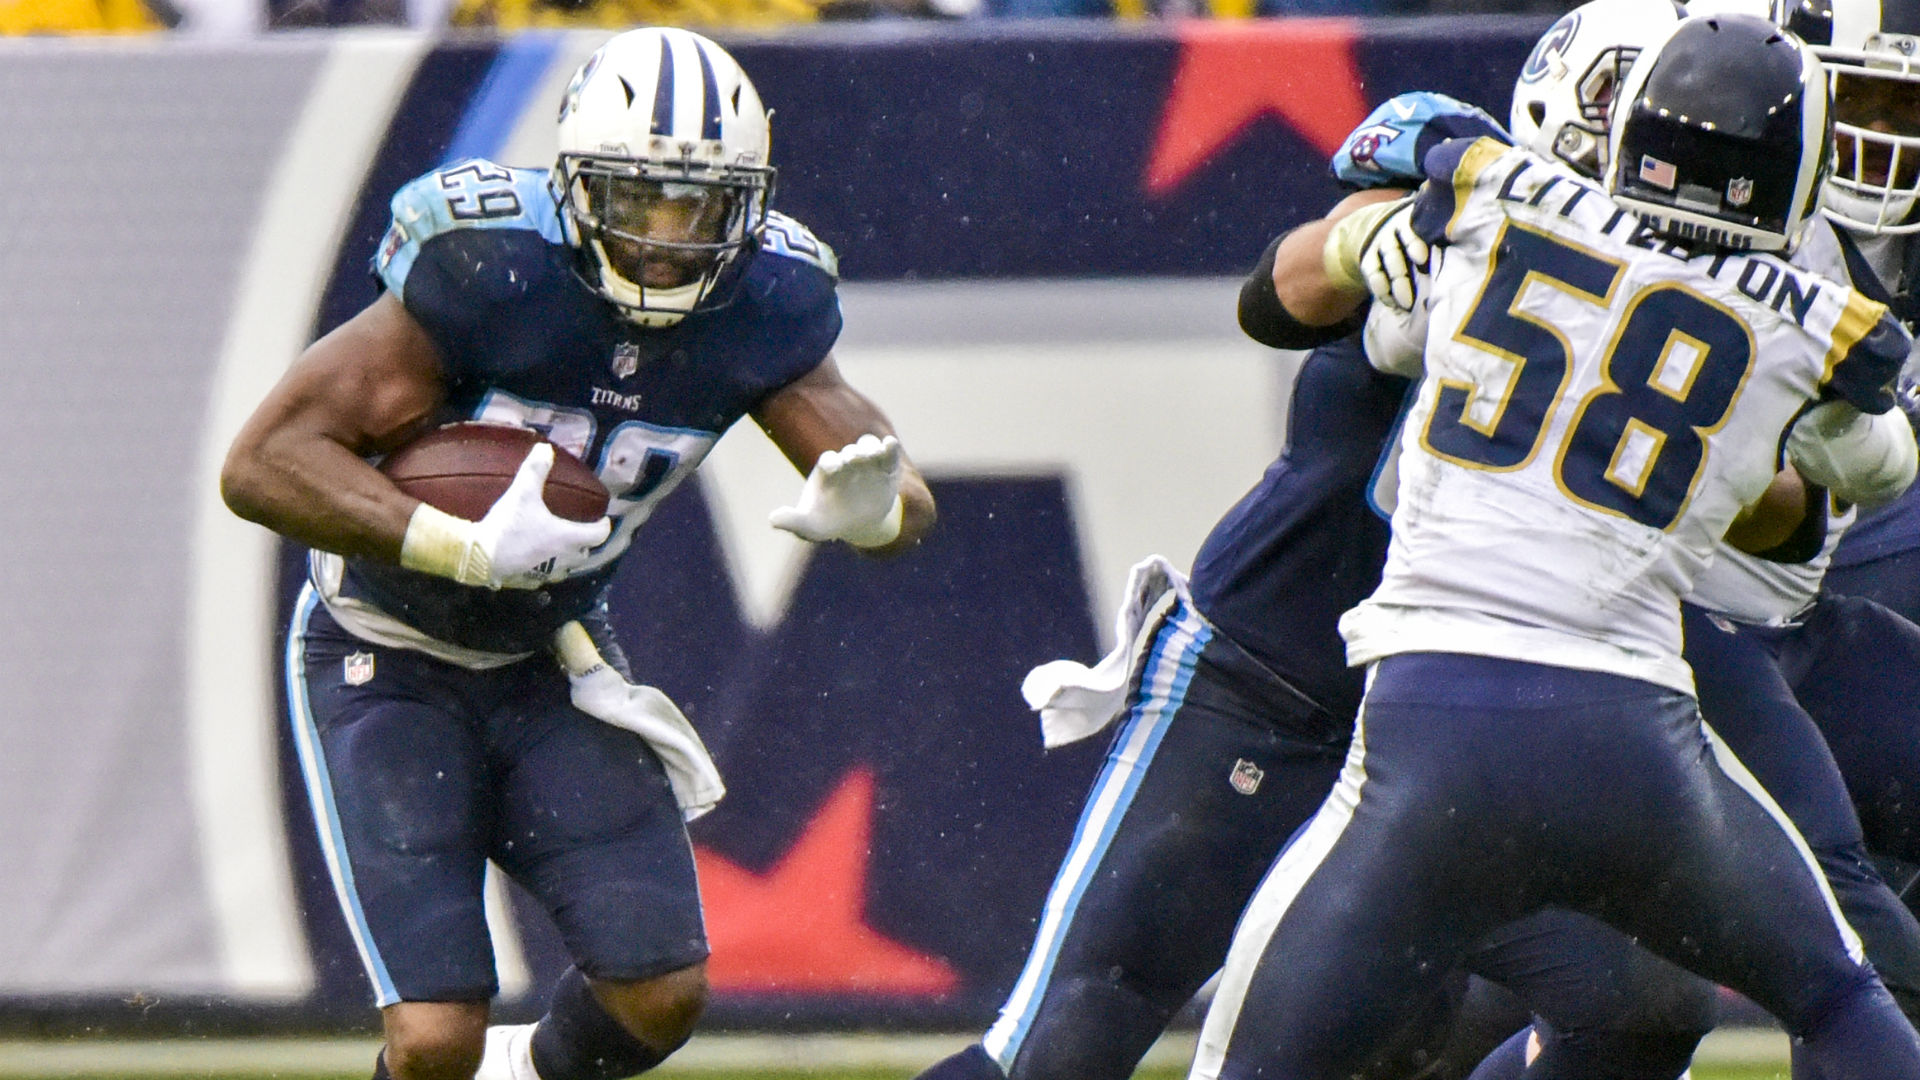 DeMarco Murray to undergo MRI on knee